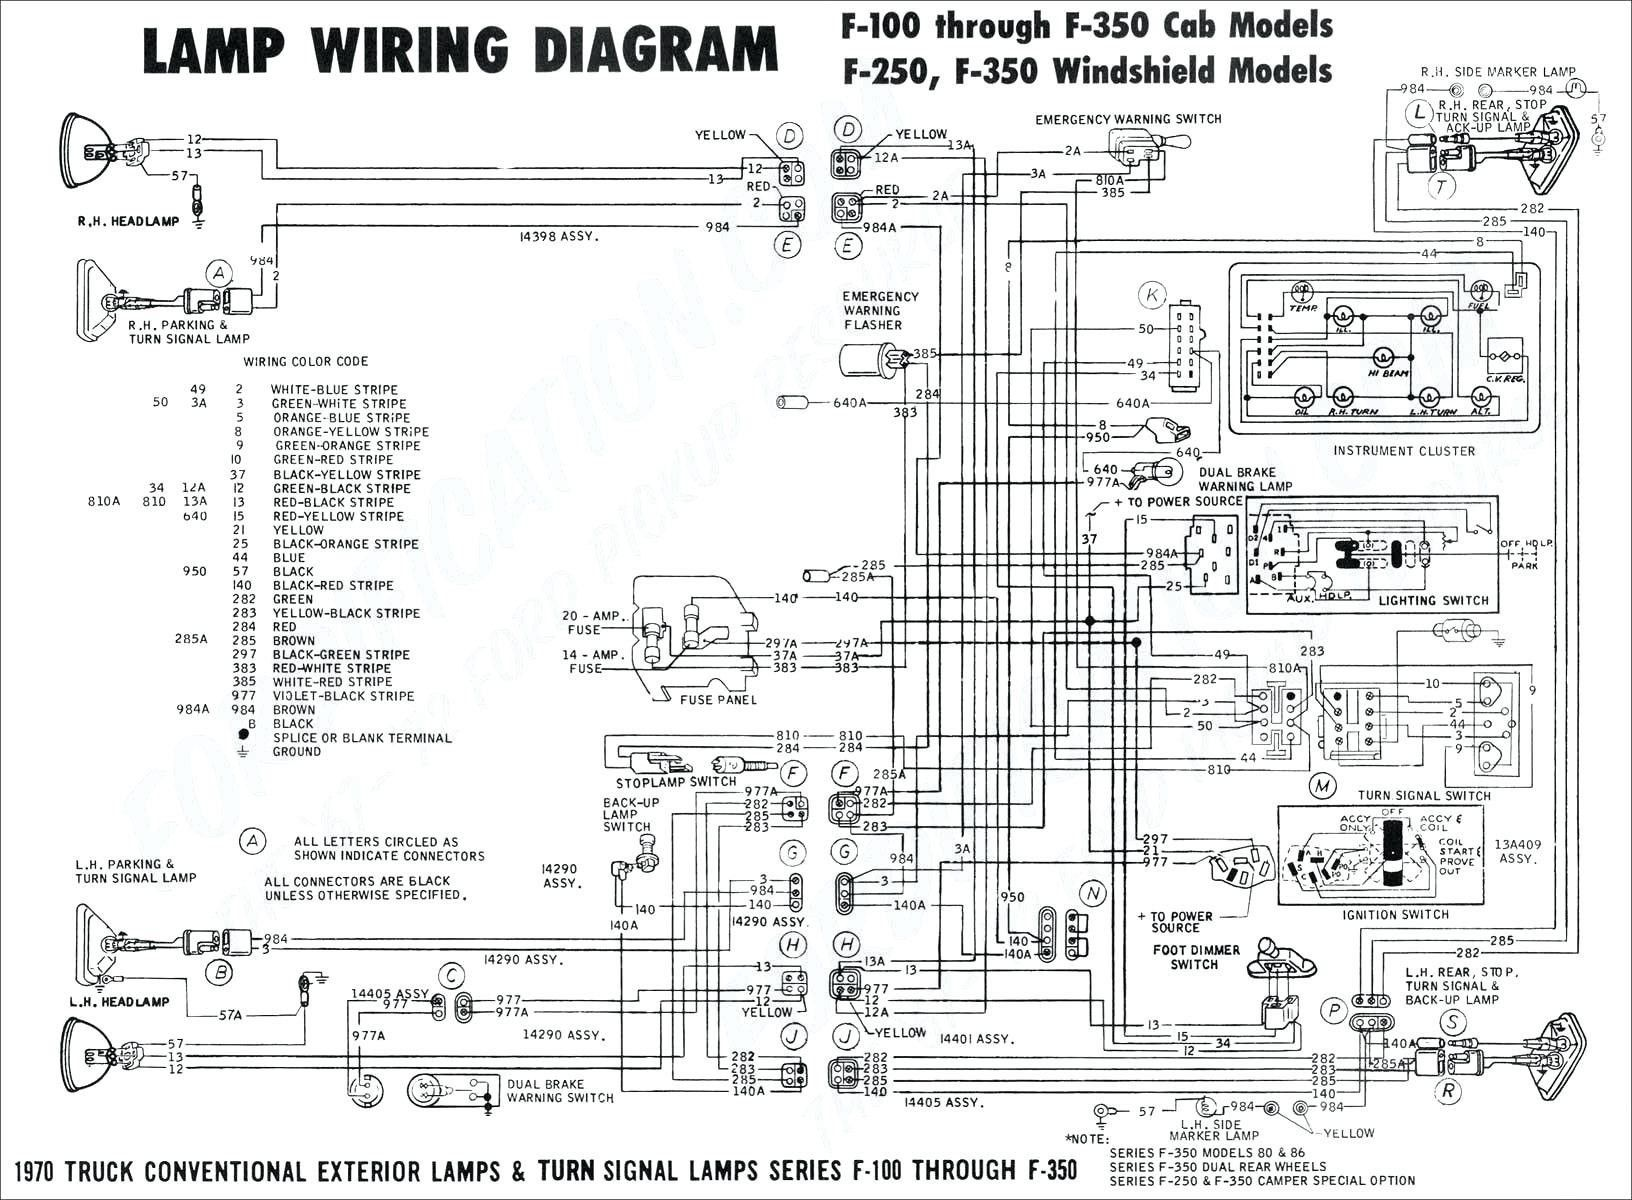 Tail Light Wiring Diagram For 2000 F350 In 2020 Trailer Wiring Diagram Electrical Wiring Diagram Circuit Diagram